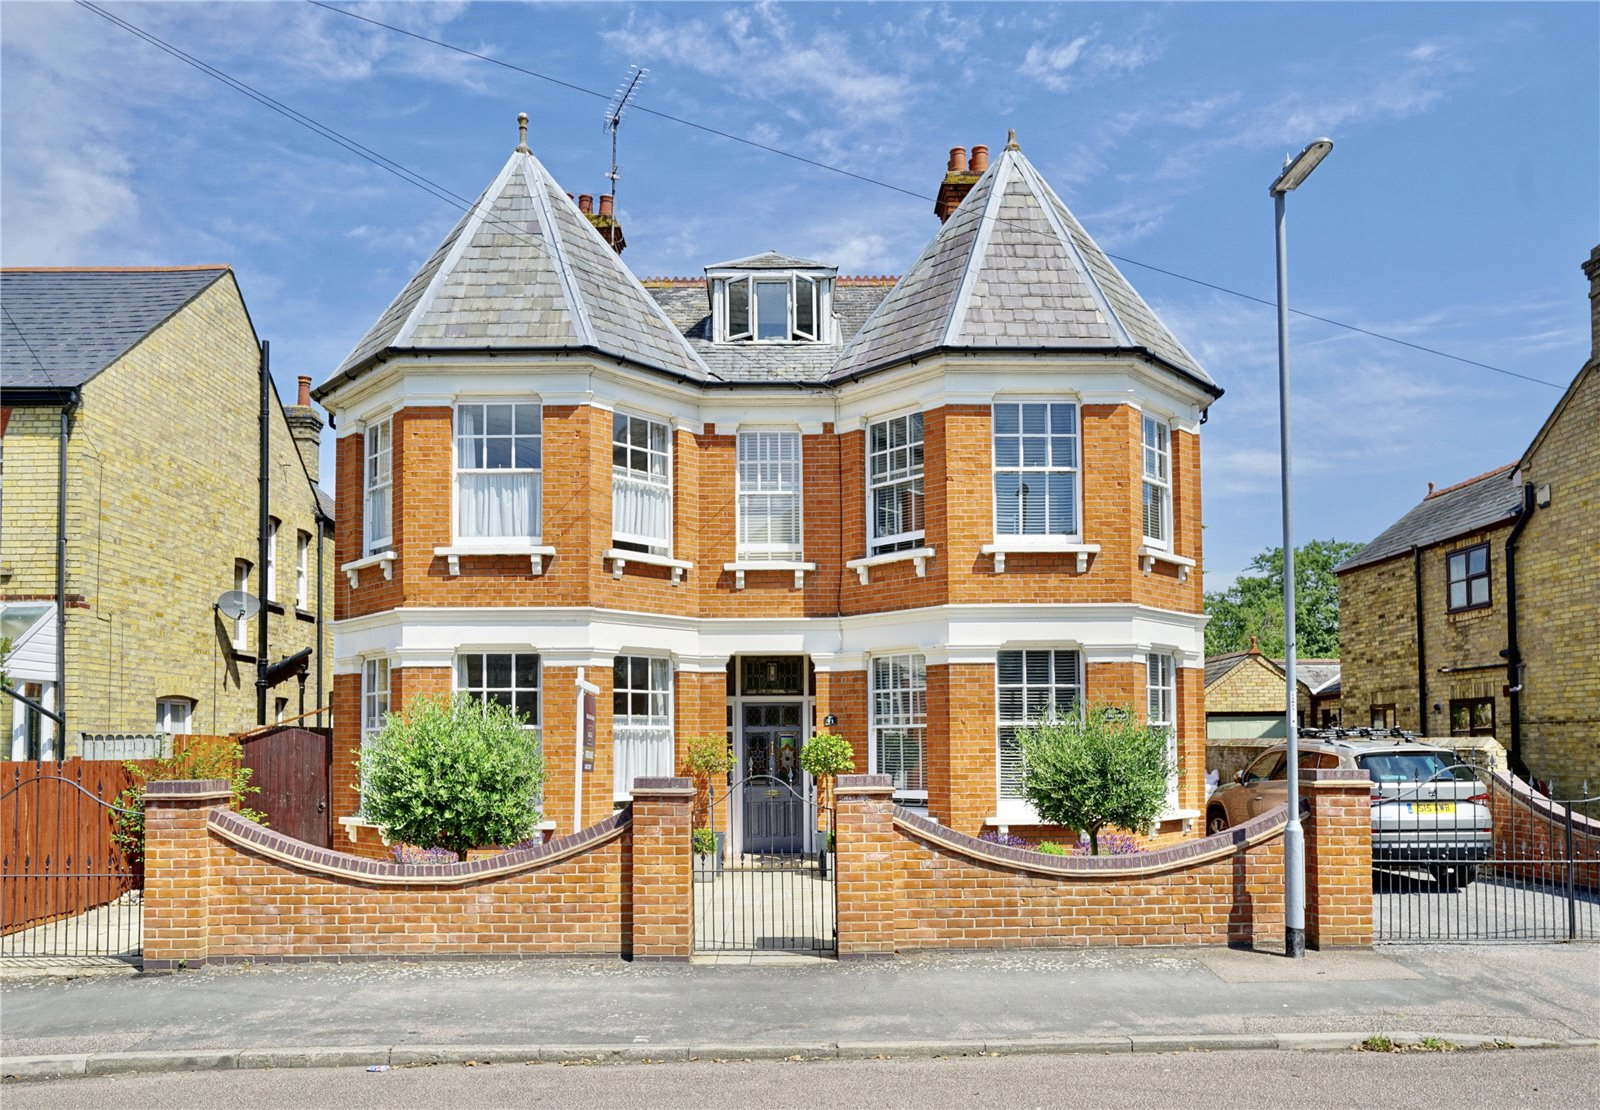 5 bed house for sale in Avenue Road, St. Neots  - Property Image 1